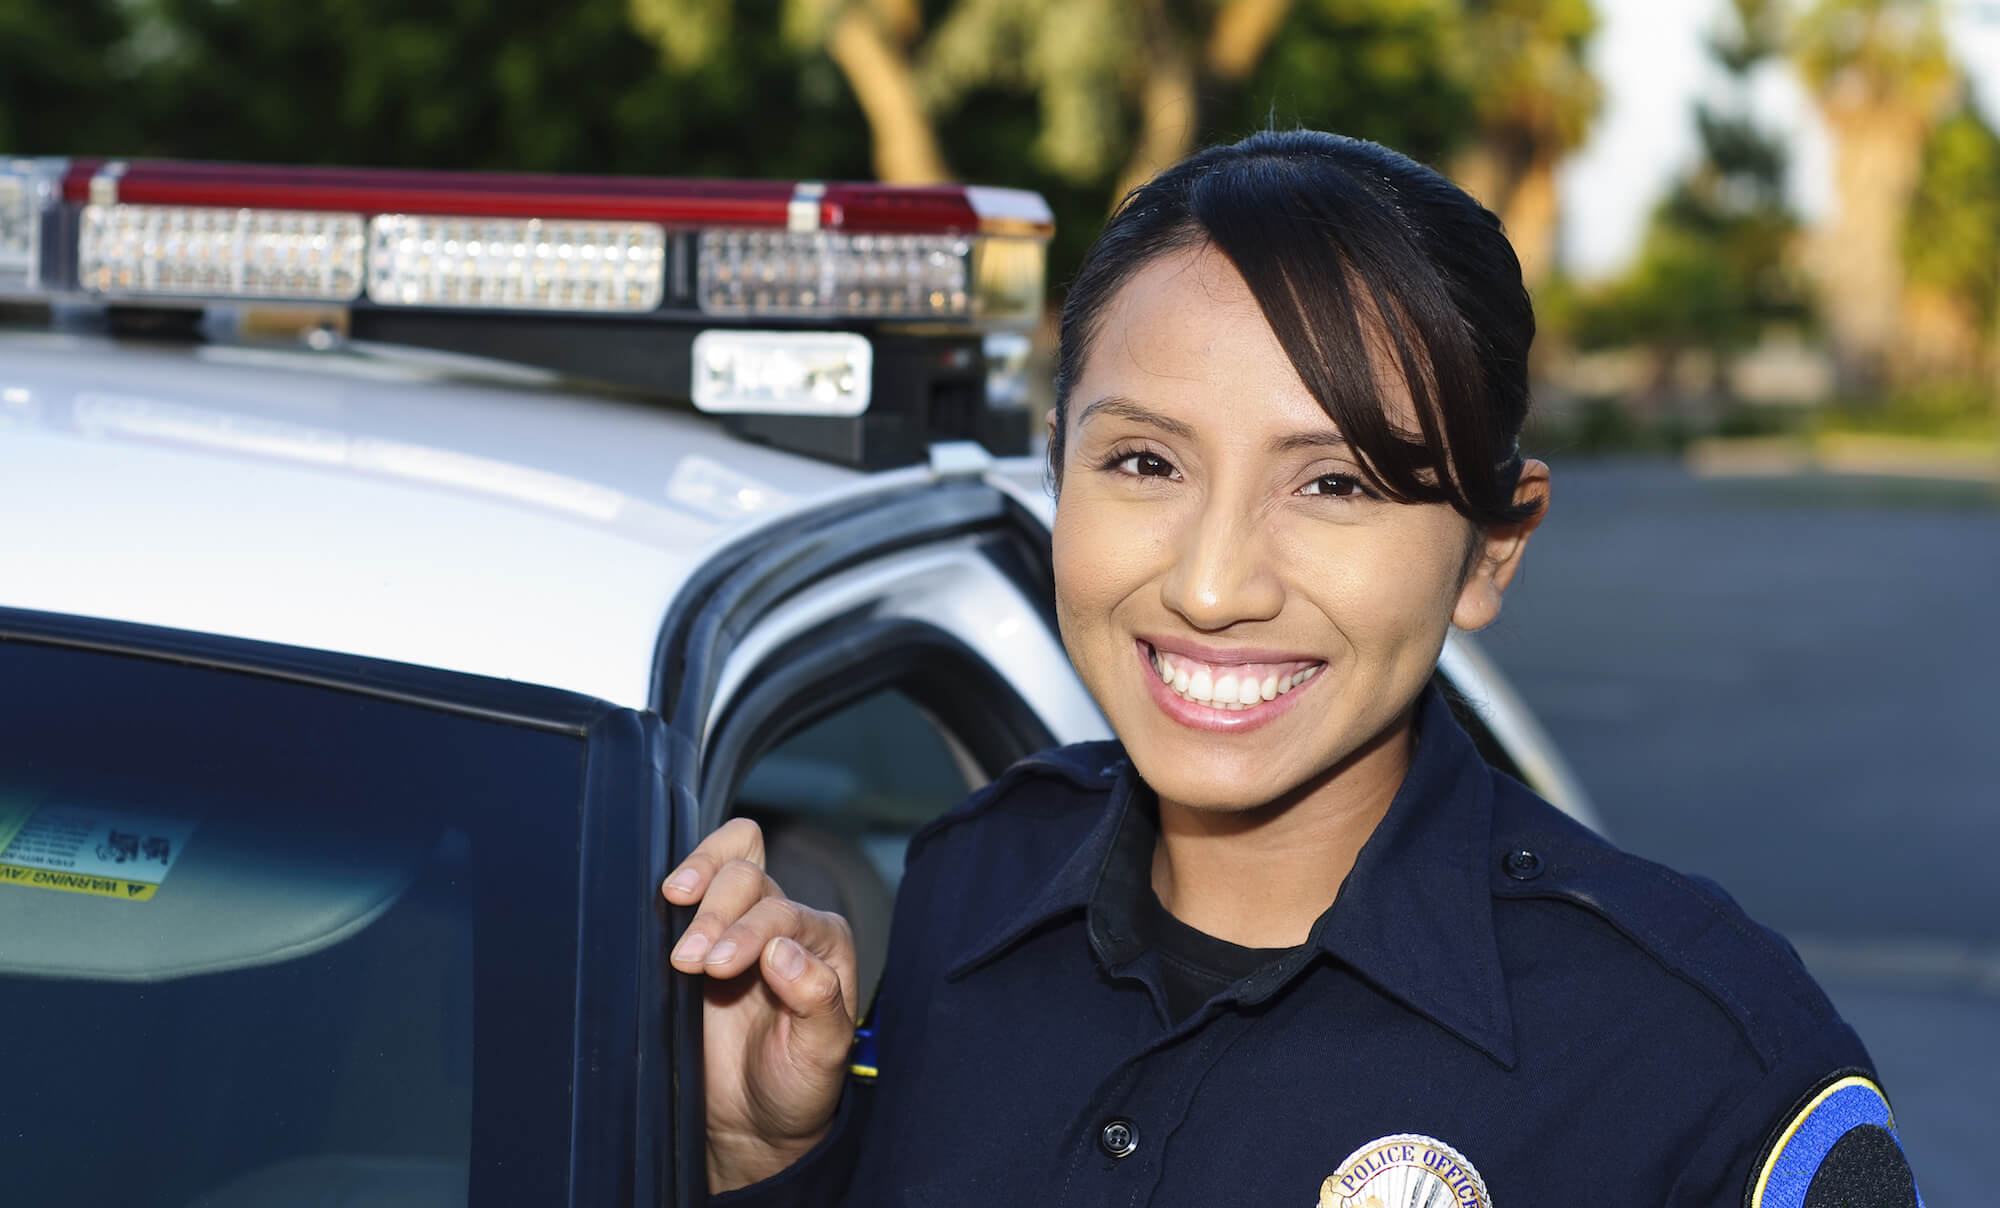 Female Hispanic police officer smiling next to her car